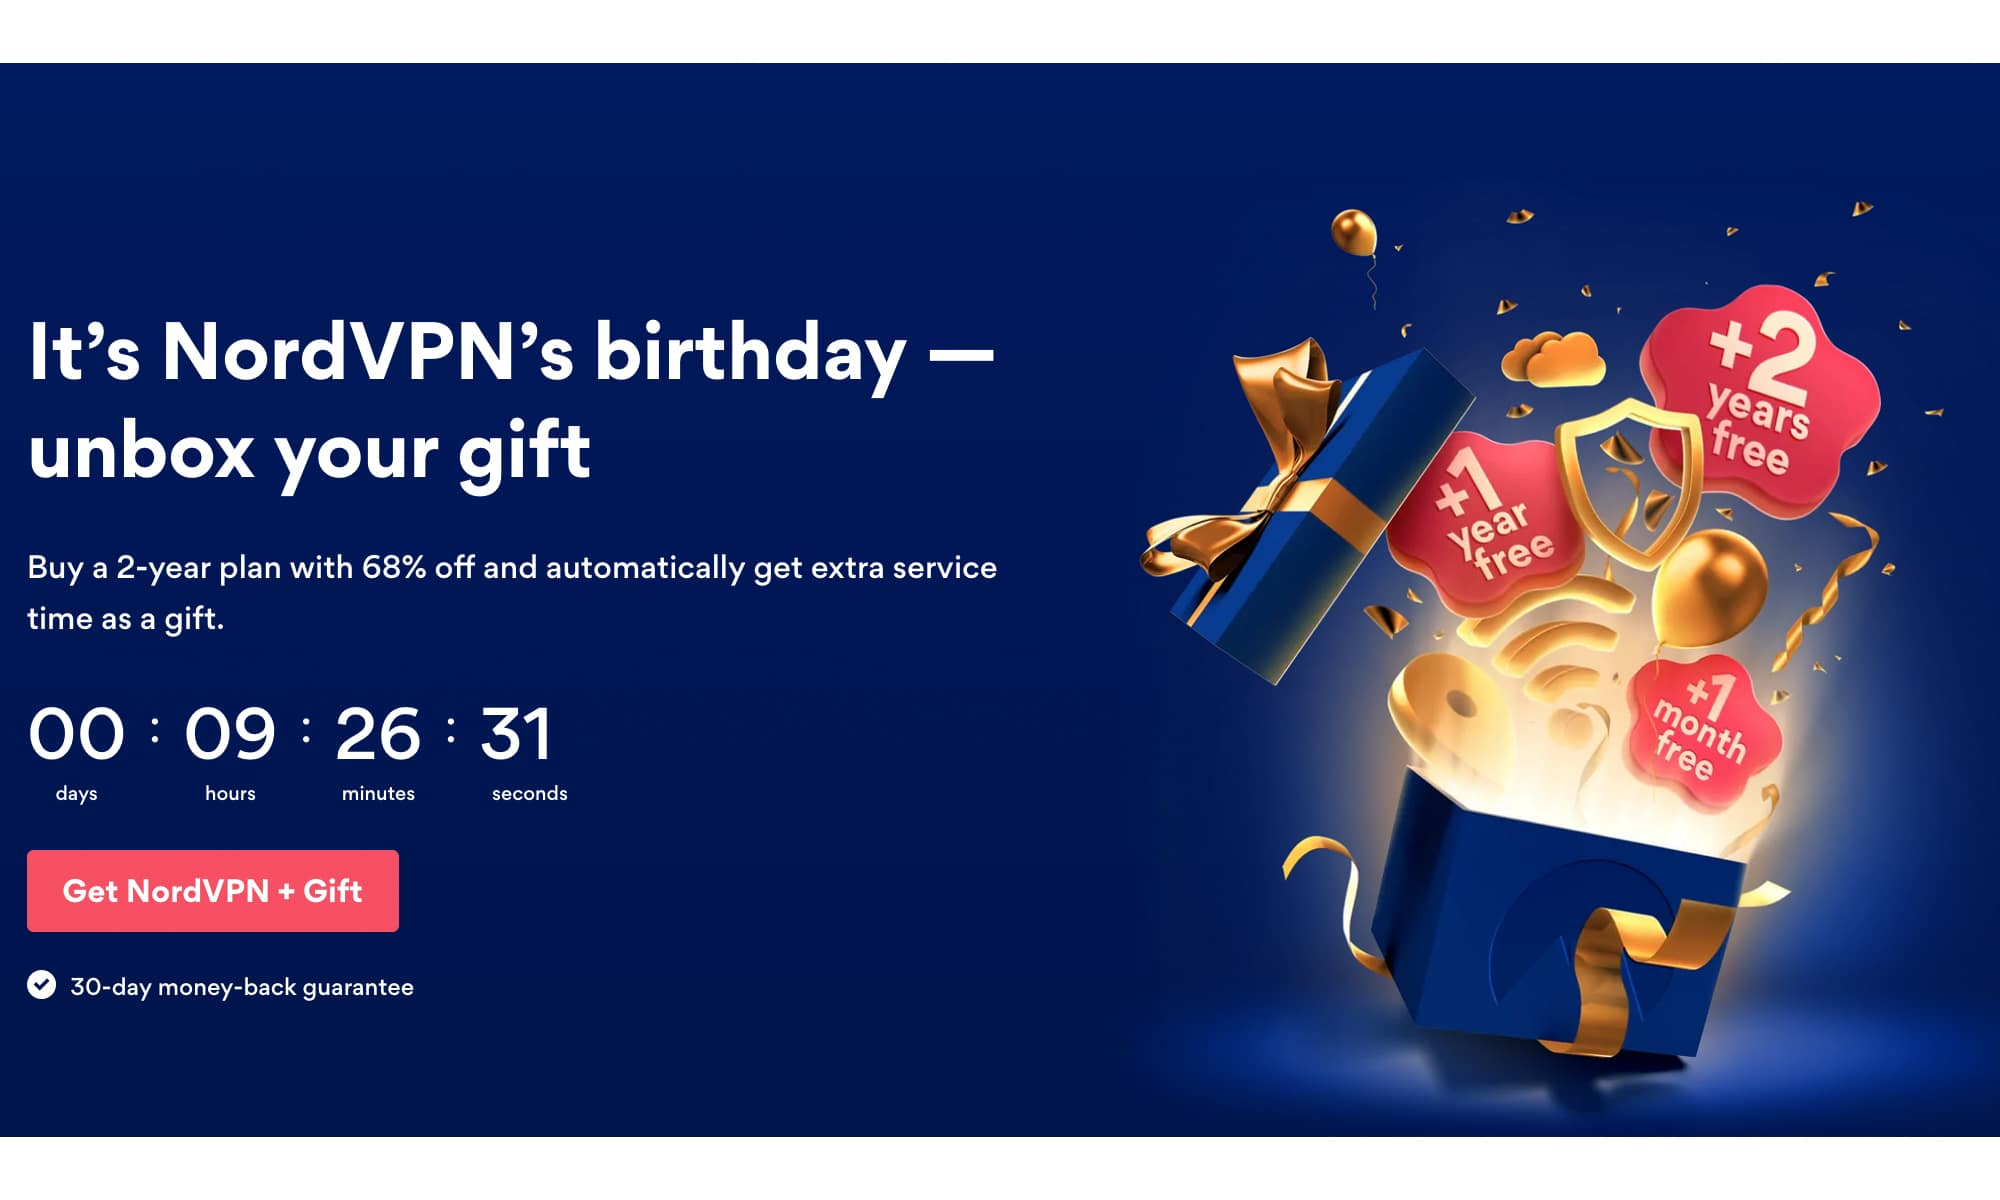 How often does NordVPN have sales?